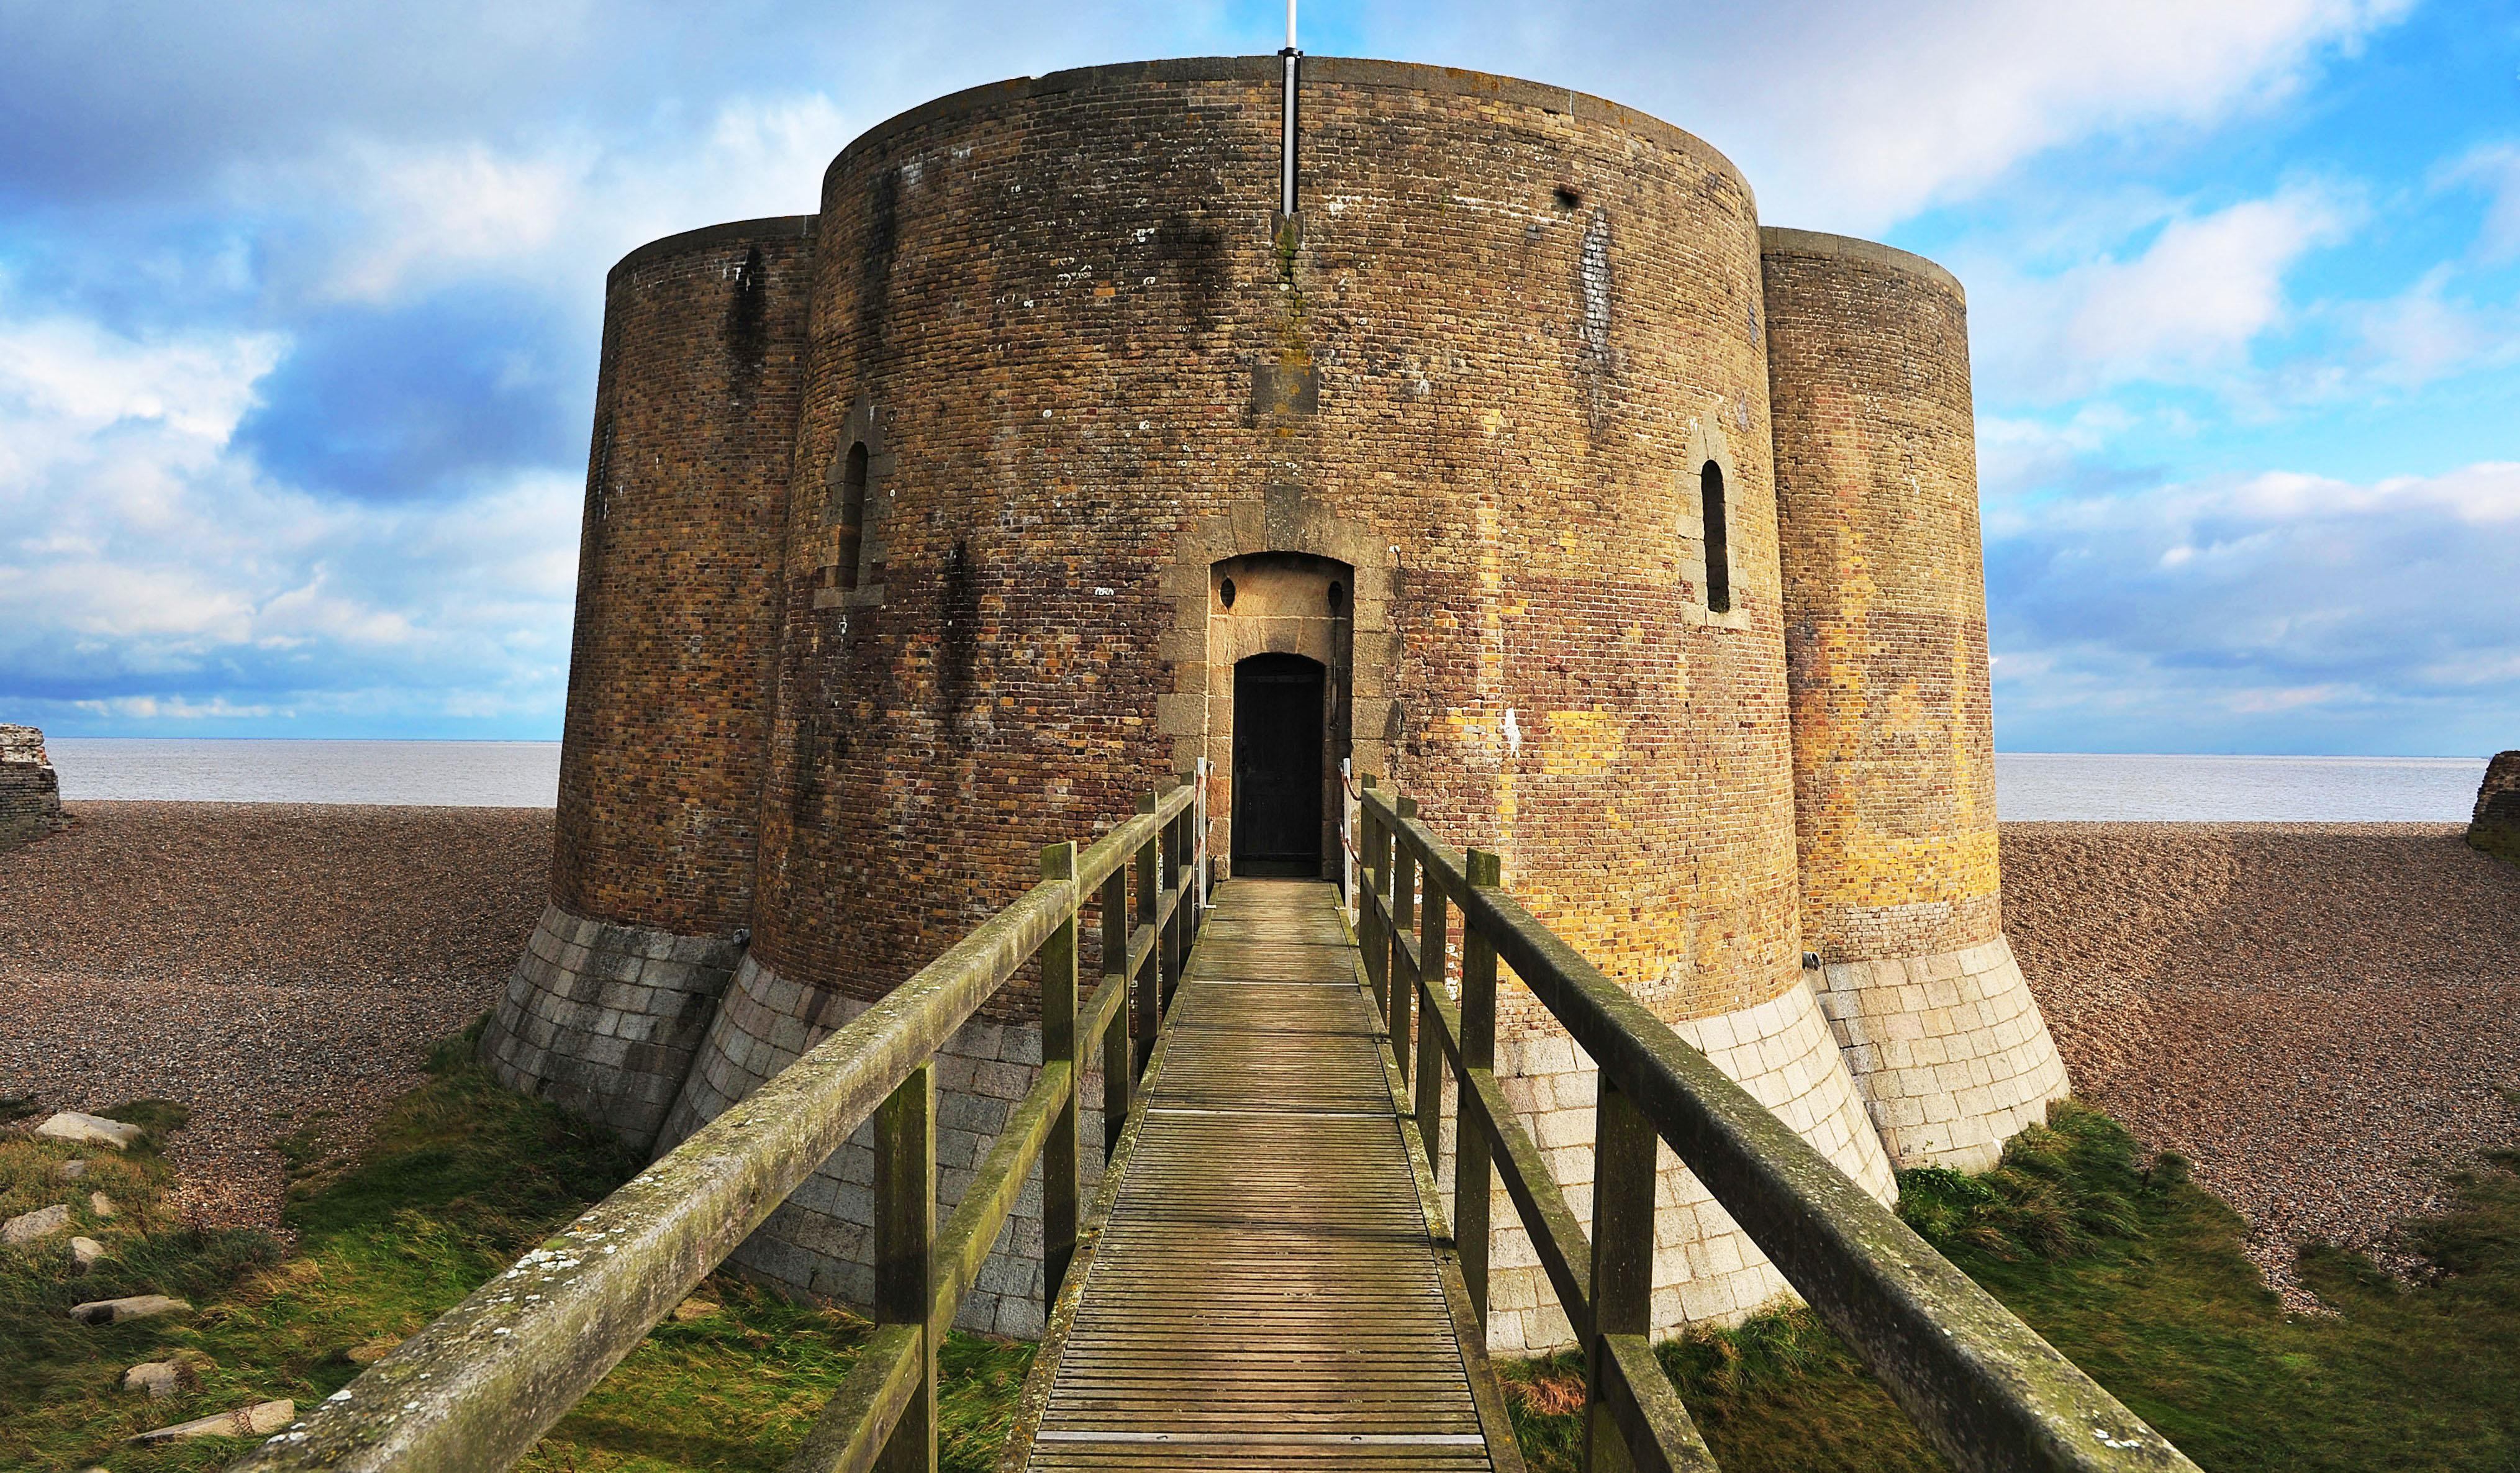 Stay at the Martello Tower in Aldeburgh